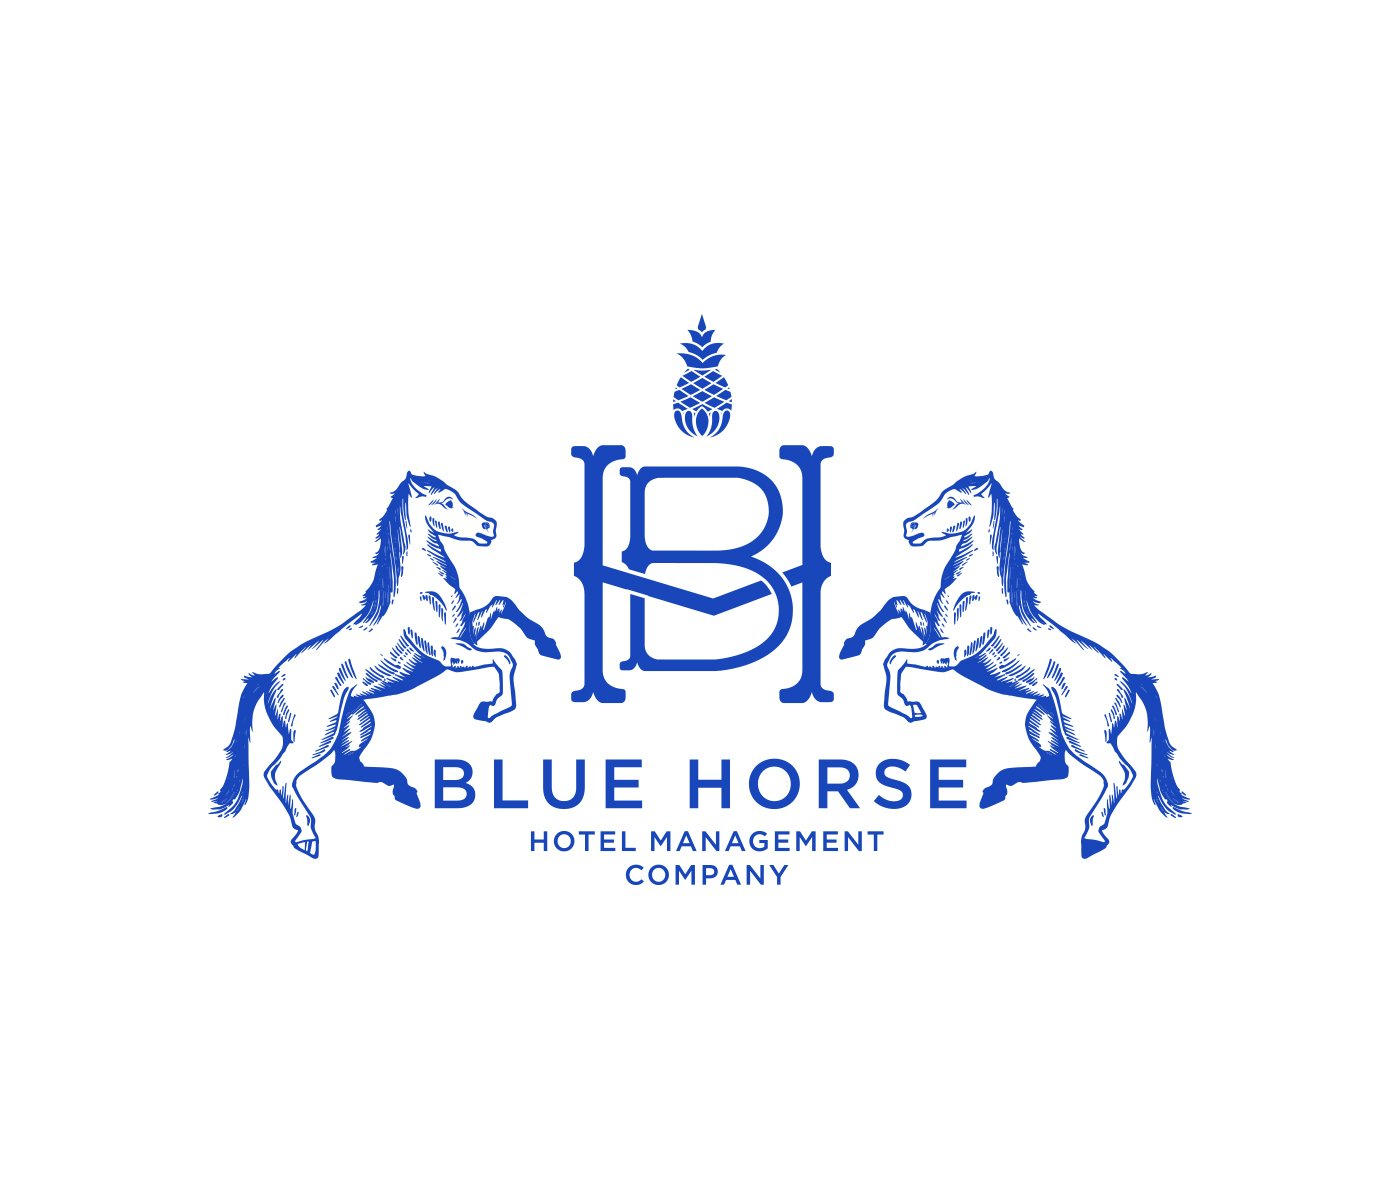 Blue Horse Hotel Management Company